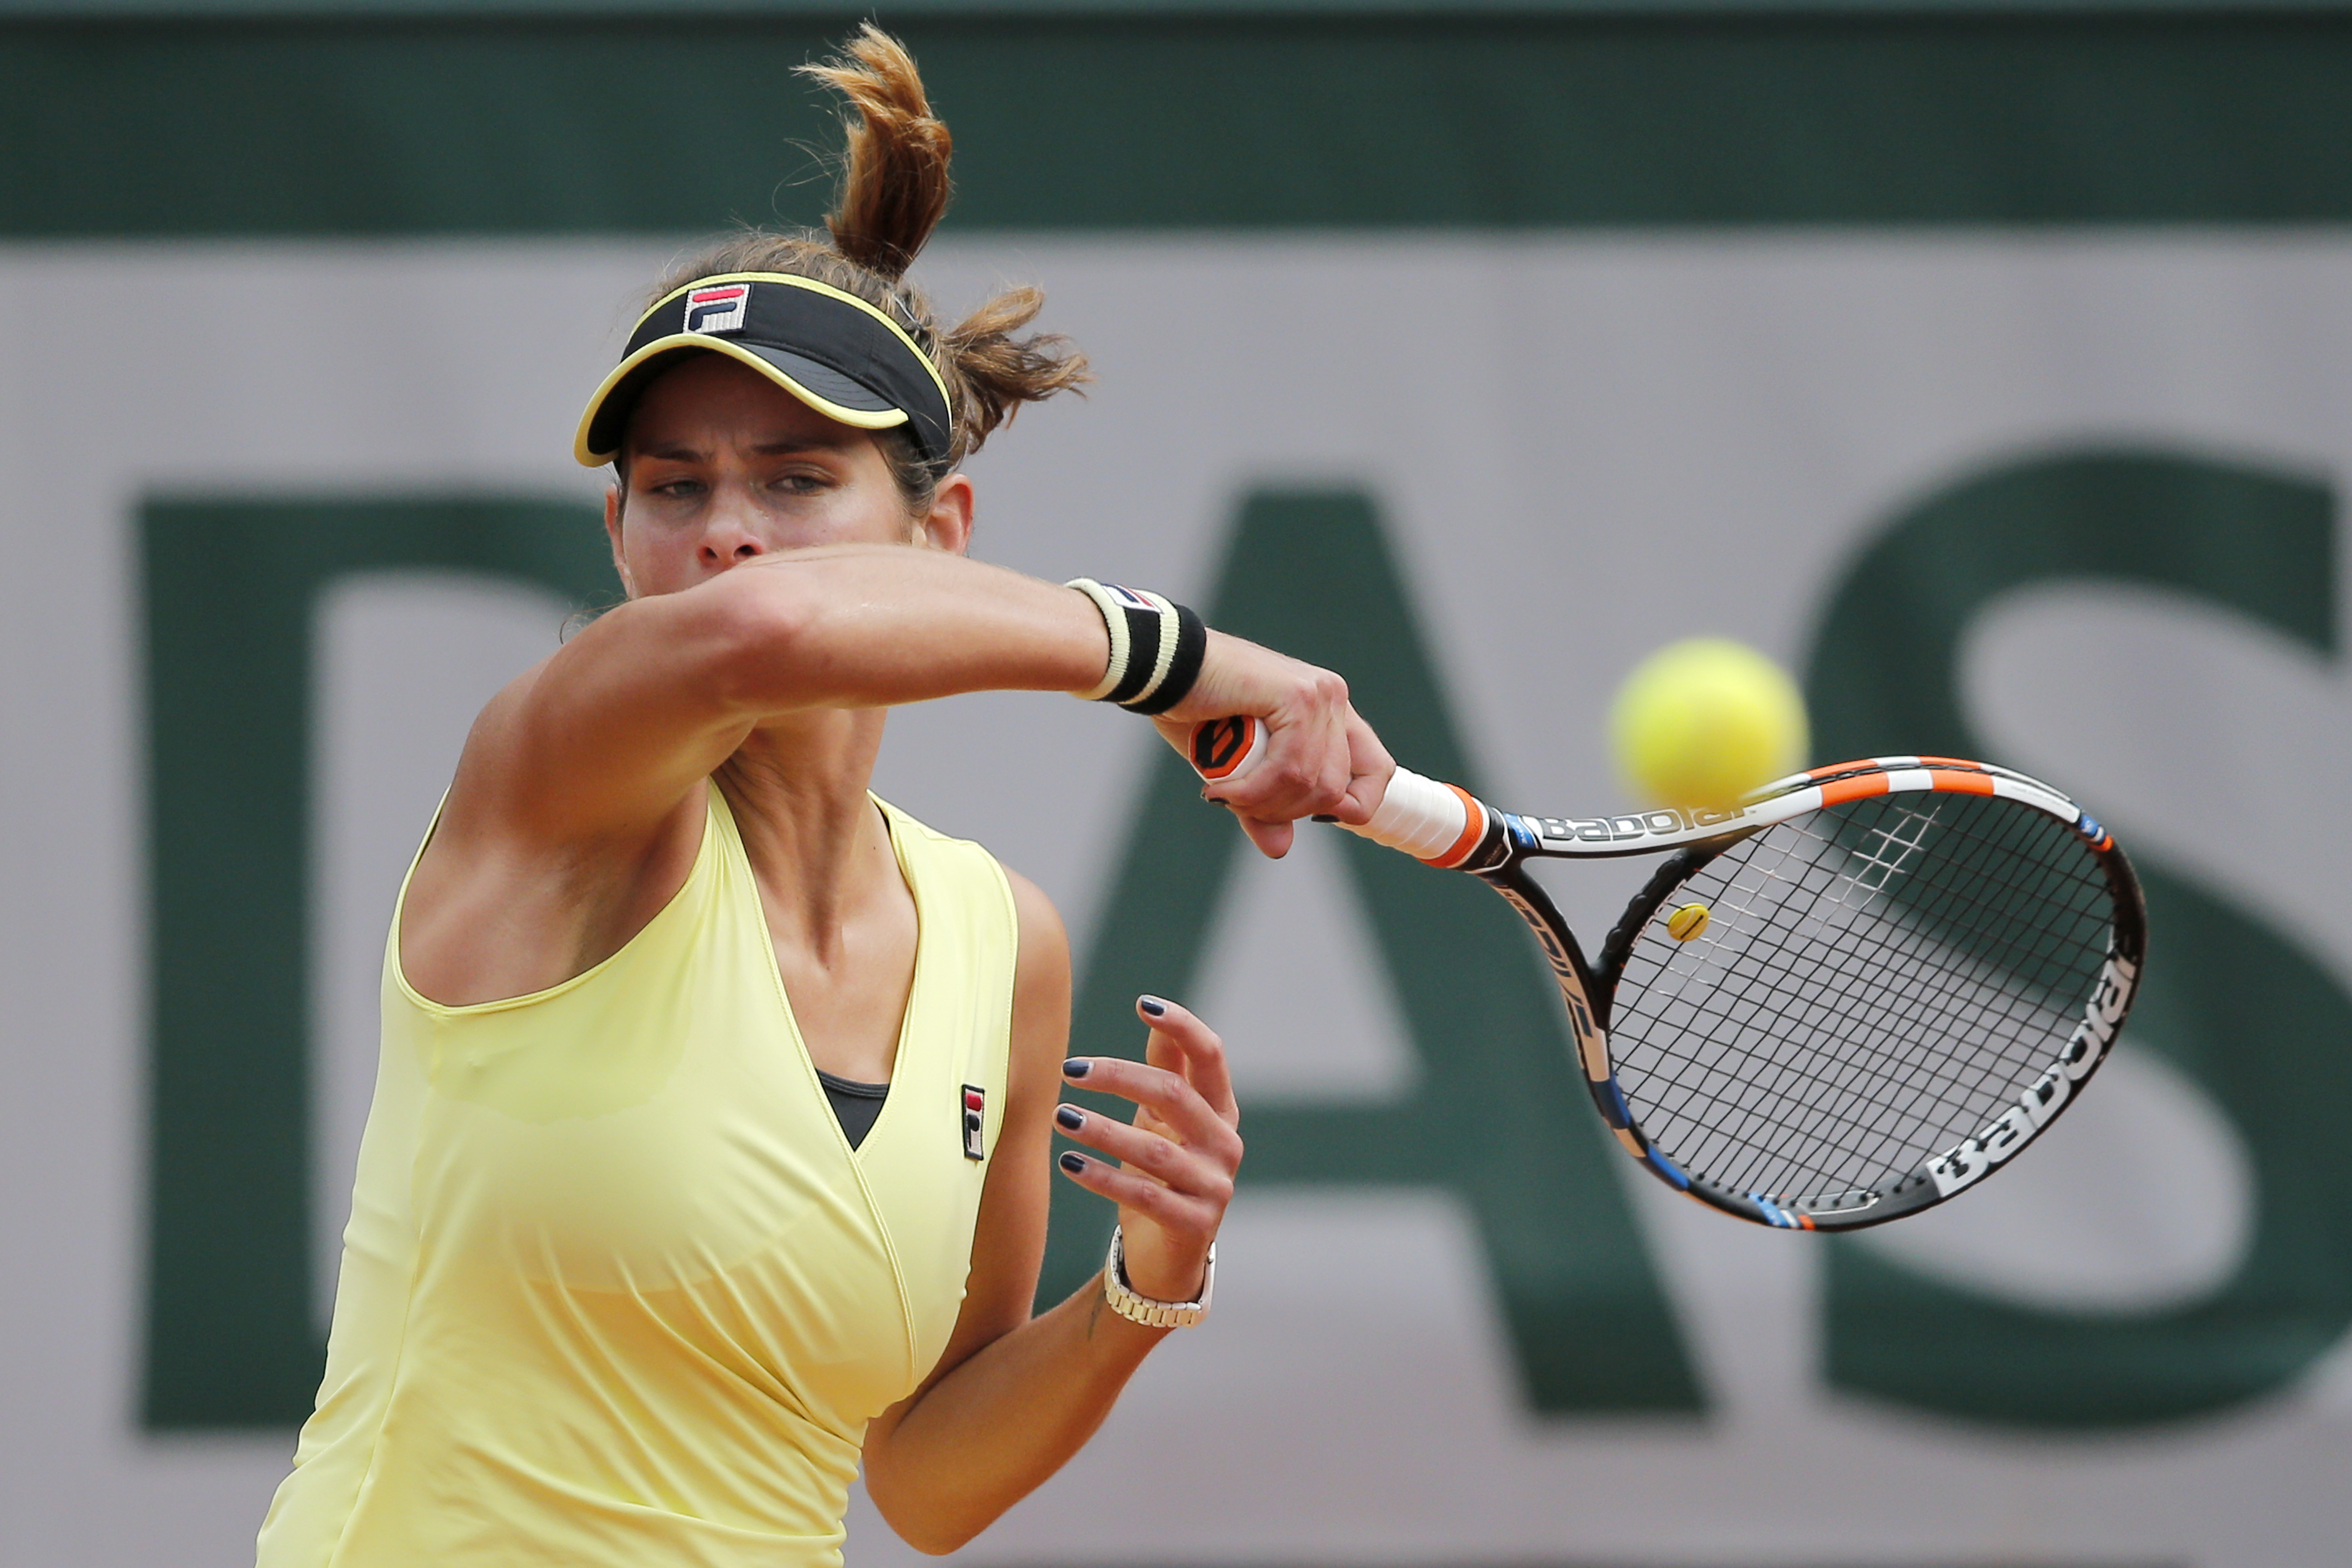 Germany's Julia Georges returns in the second round match of the French Open tennis tournament against Denmark's Caroline Wozniacki at the Roland Garros stadium, in Paris, France, Thursday, May 28, 2015. (AP Photo/Christophe Ena)